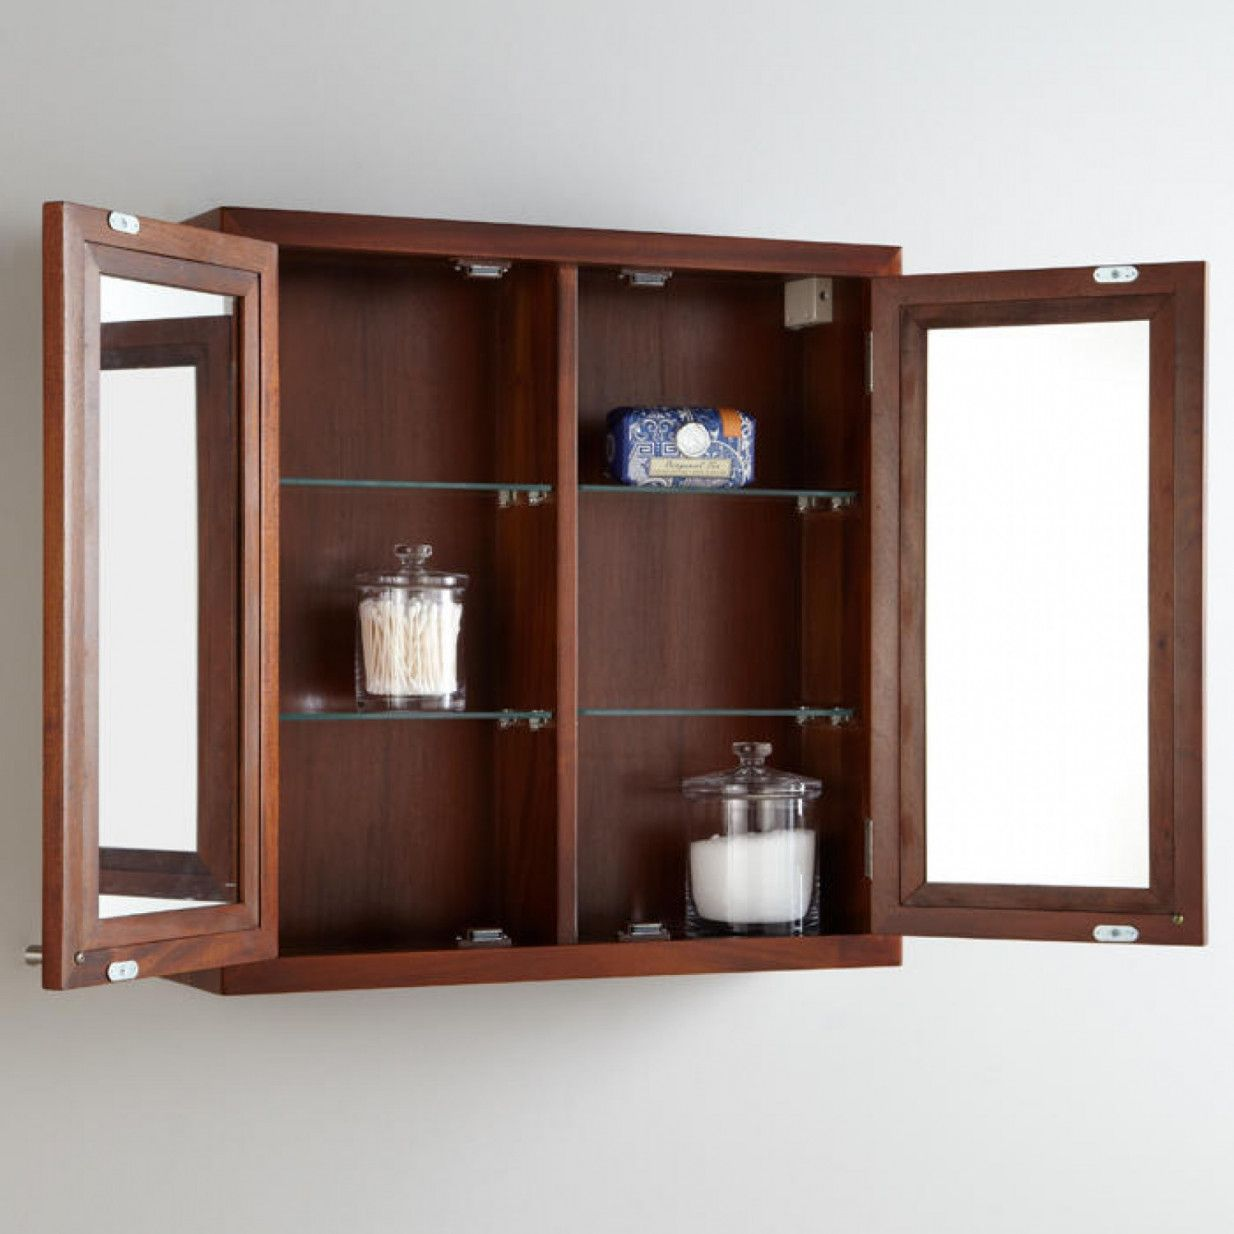 55 Mahogany Bathroom Wall Cabinet Best Paint For Interior Walls Check More At Http